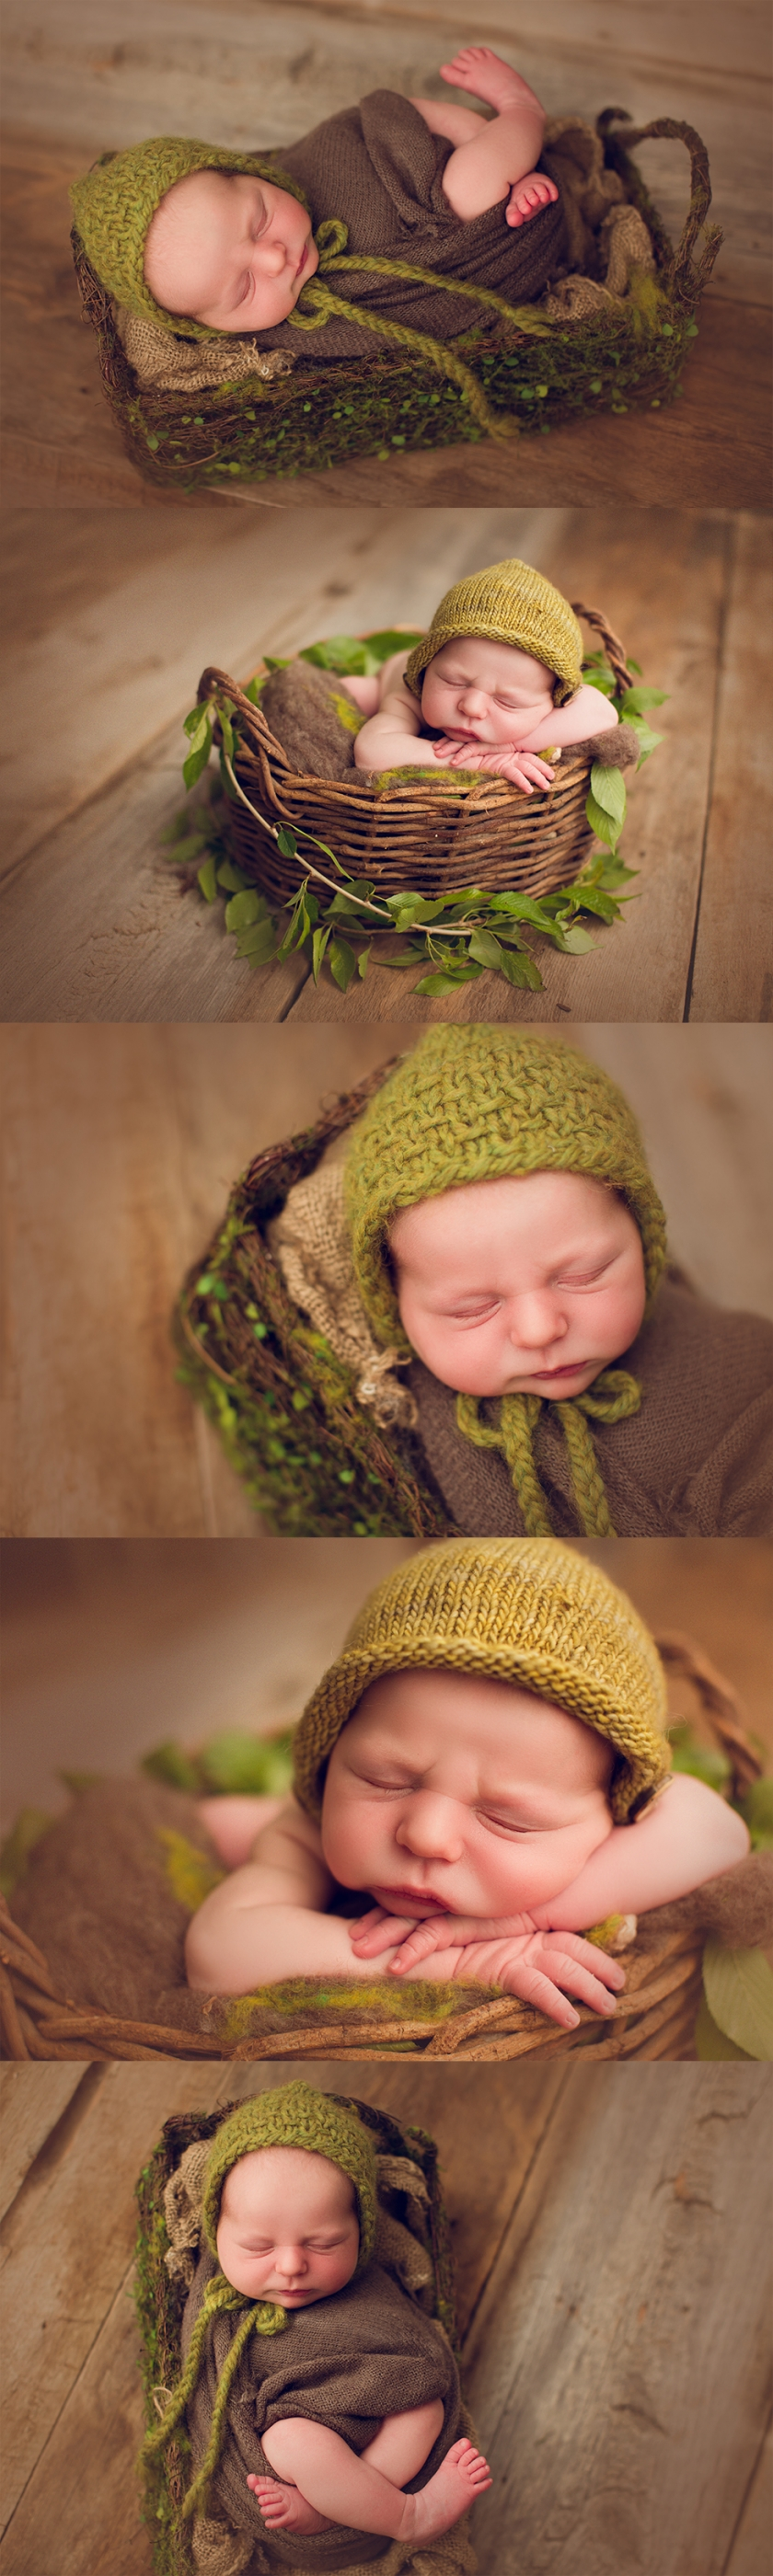 The Fawn And Fern Photography Featured In Baby Boom VOL 74